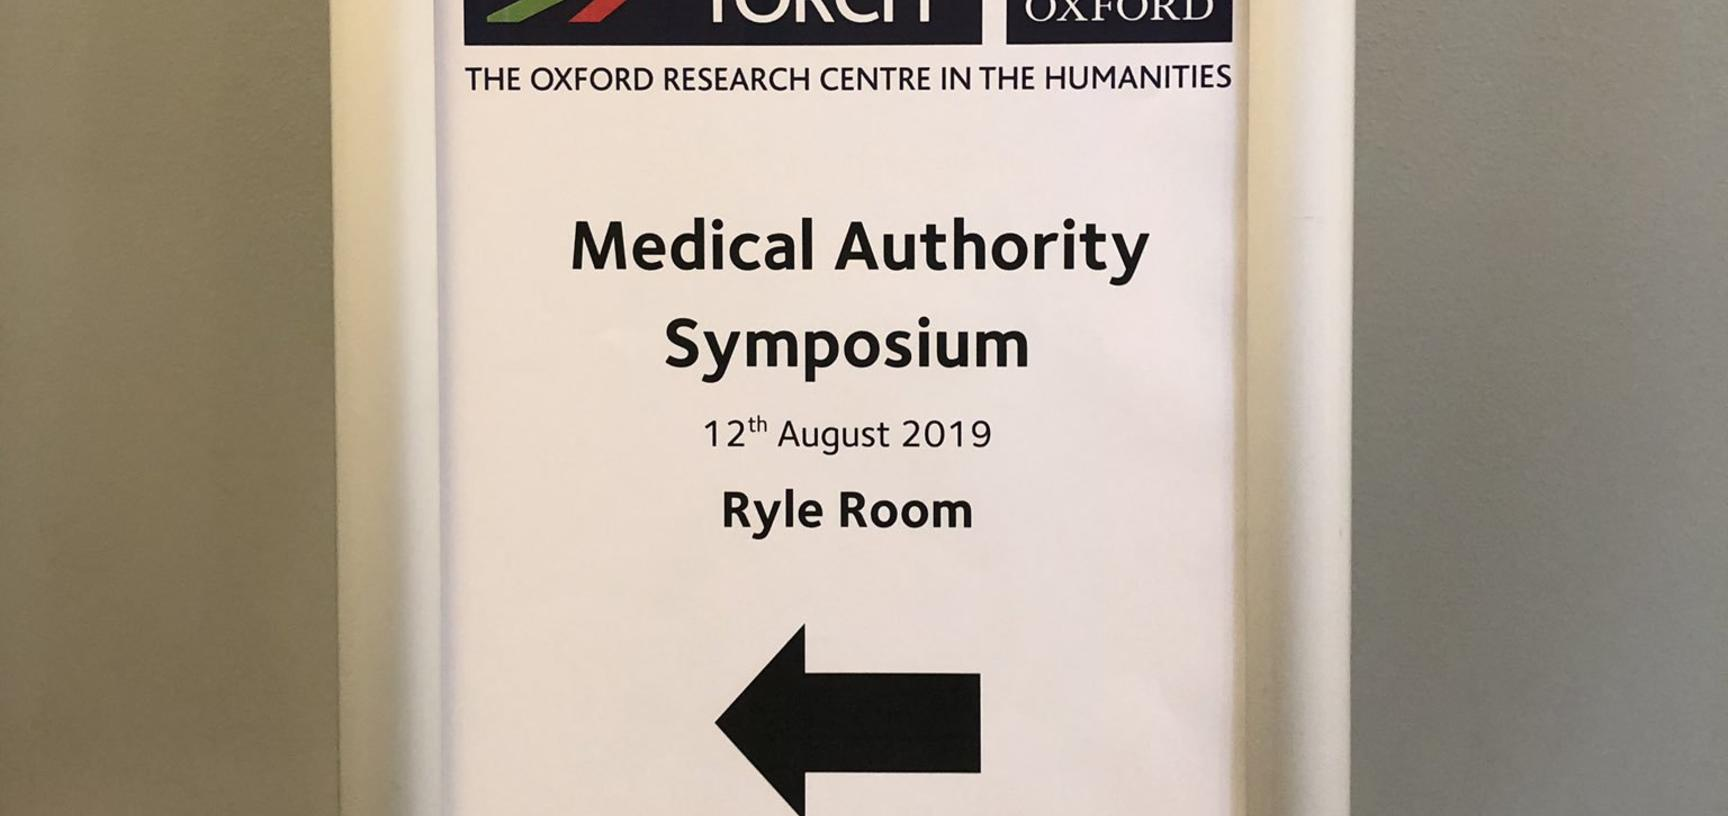 Photos from AfOx Symposium on Medical Authority | TORCH